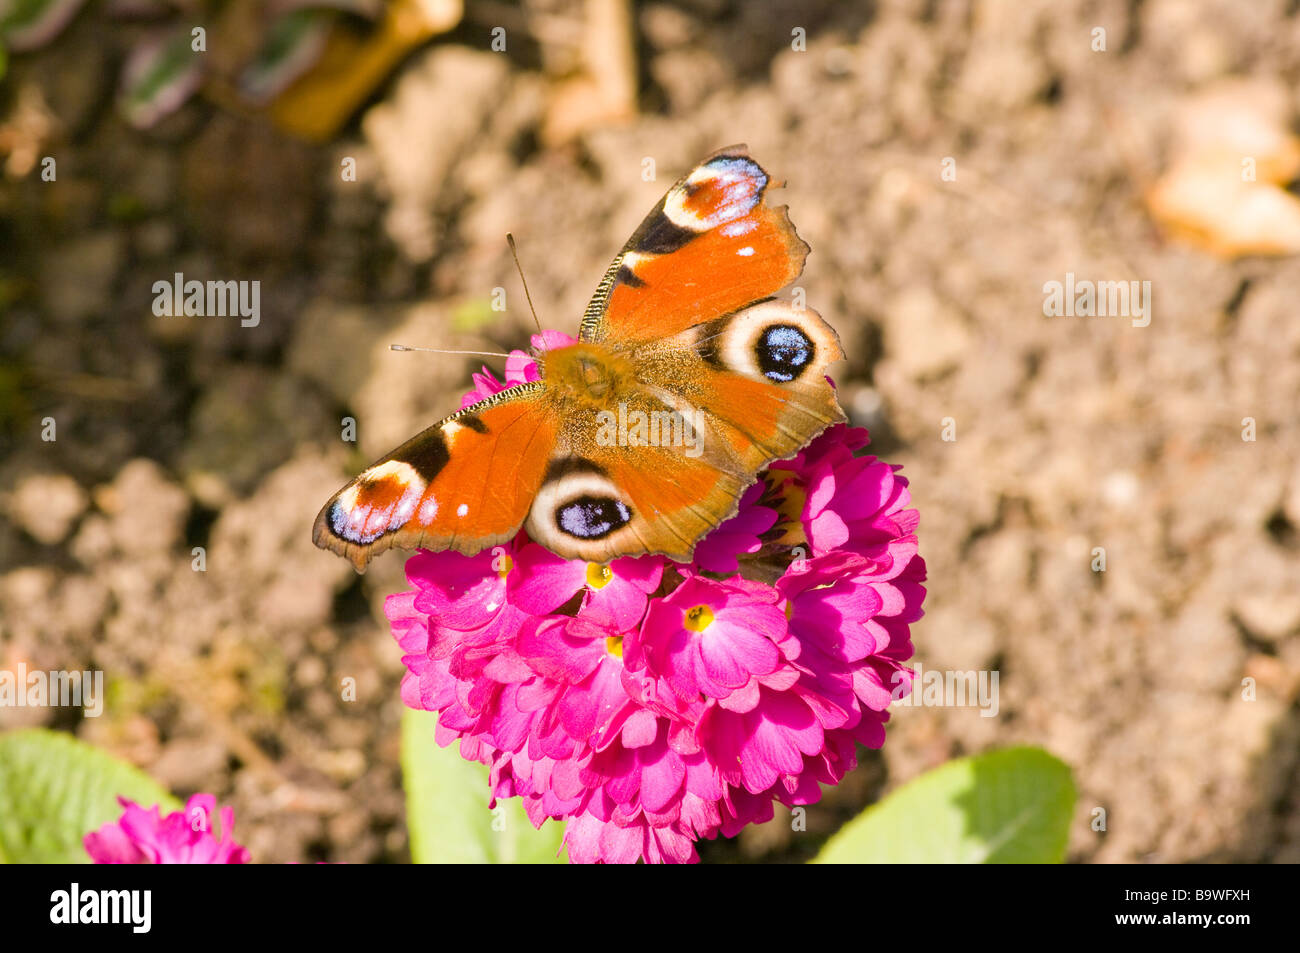 Peacock Butterfly On A Primula British uk English Butterflies - Stock Image